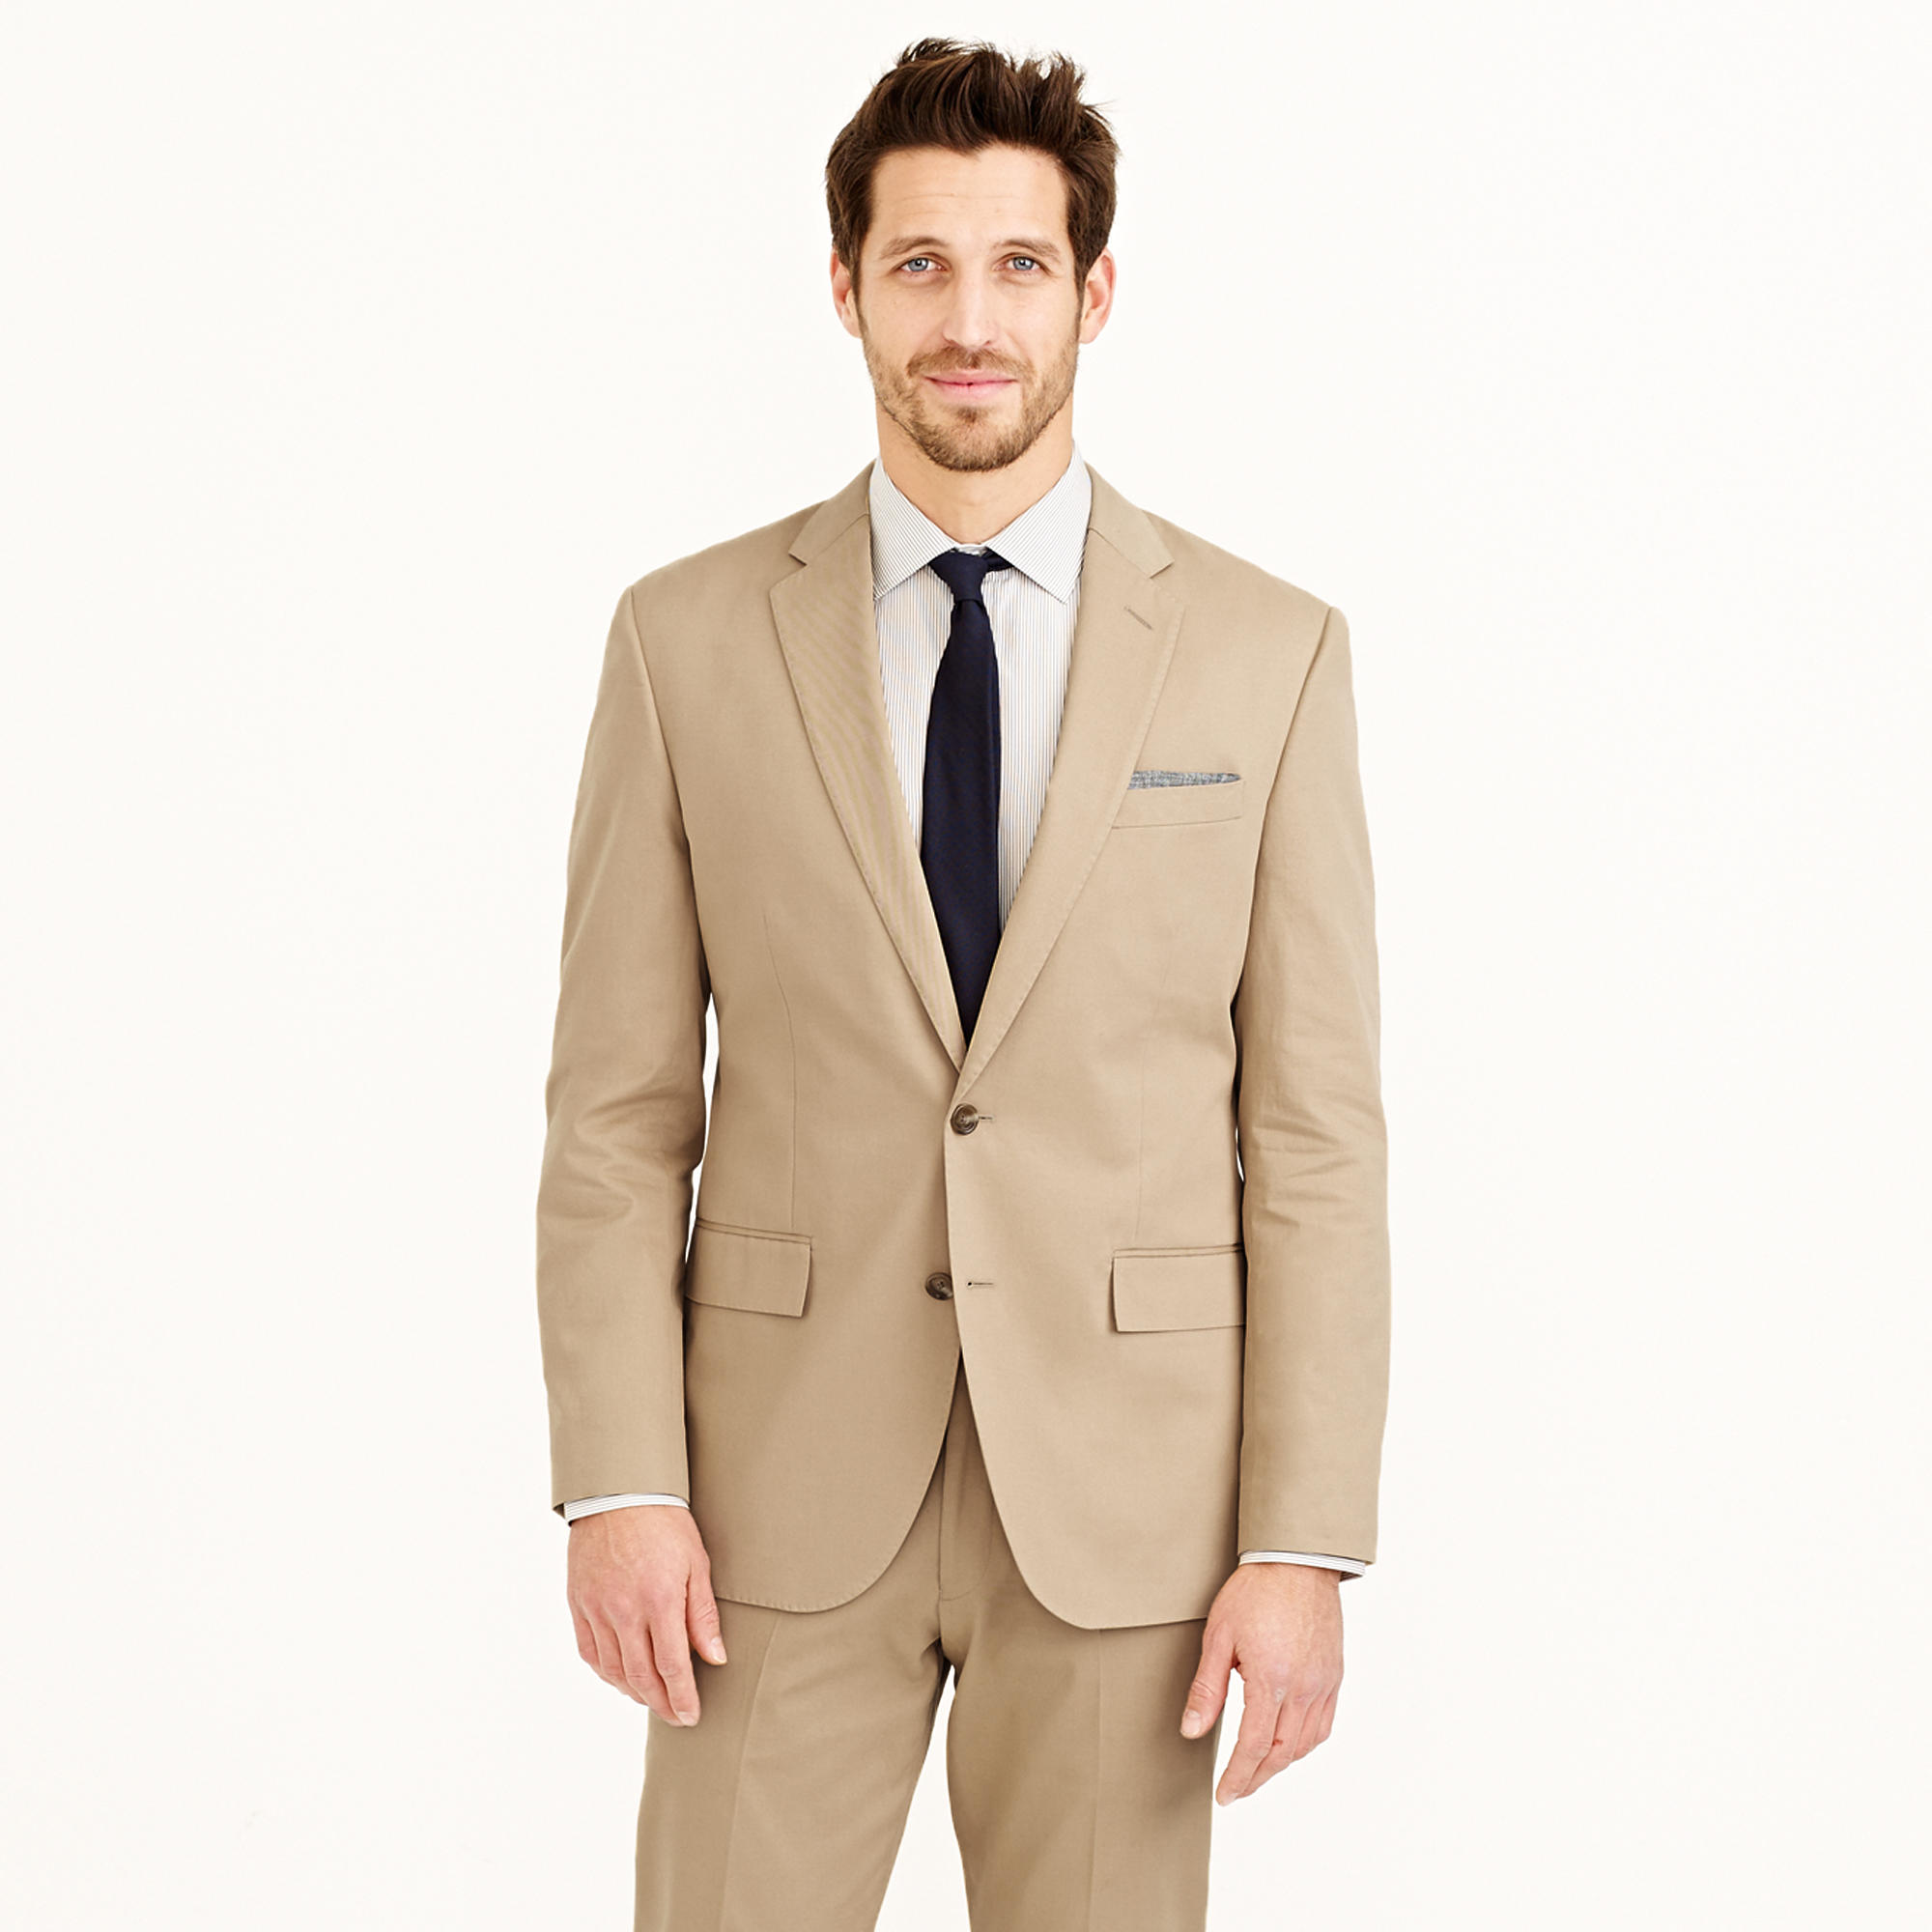 Buy iTailor Men's Cotton Chino Single-Button Suit and other Suits at exeezipcoolgetsiu9tq.cf Our wide selection is elegible for free shipping and free returns.